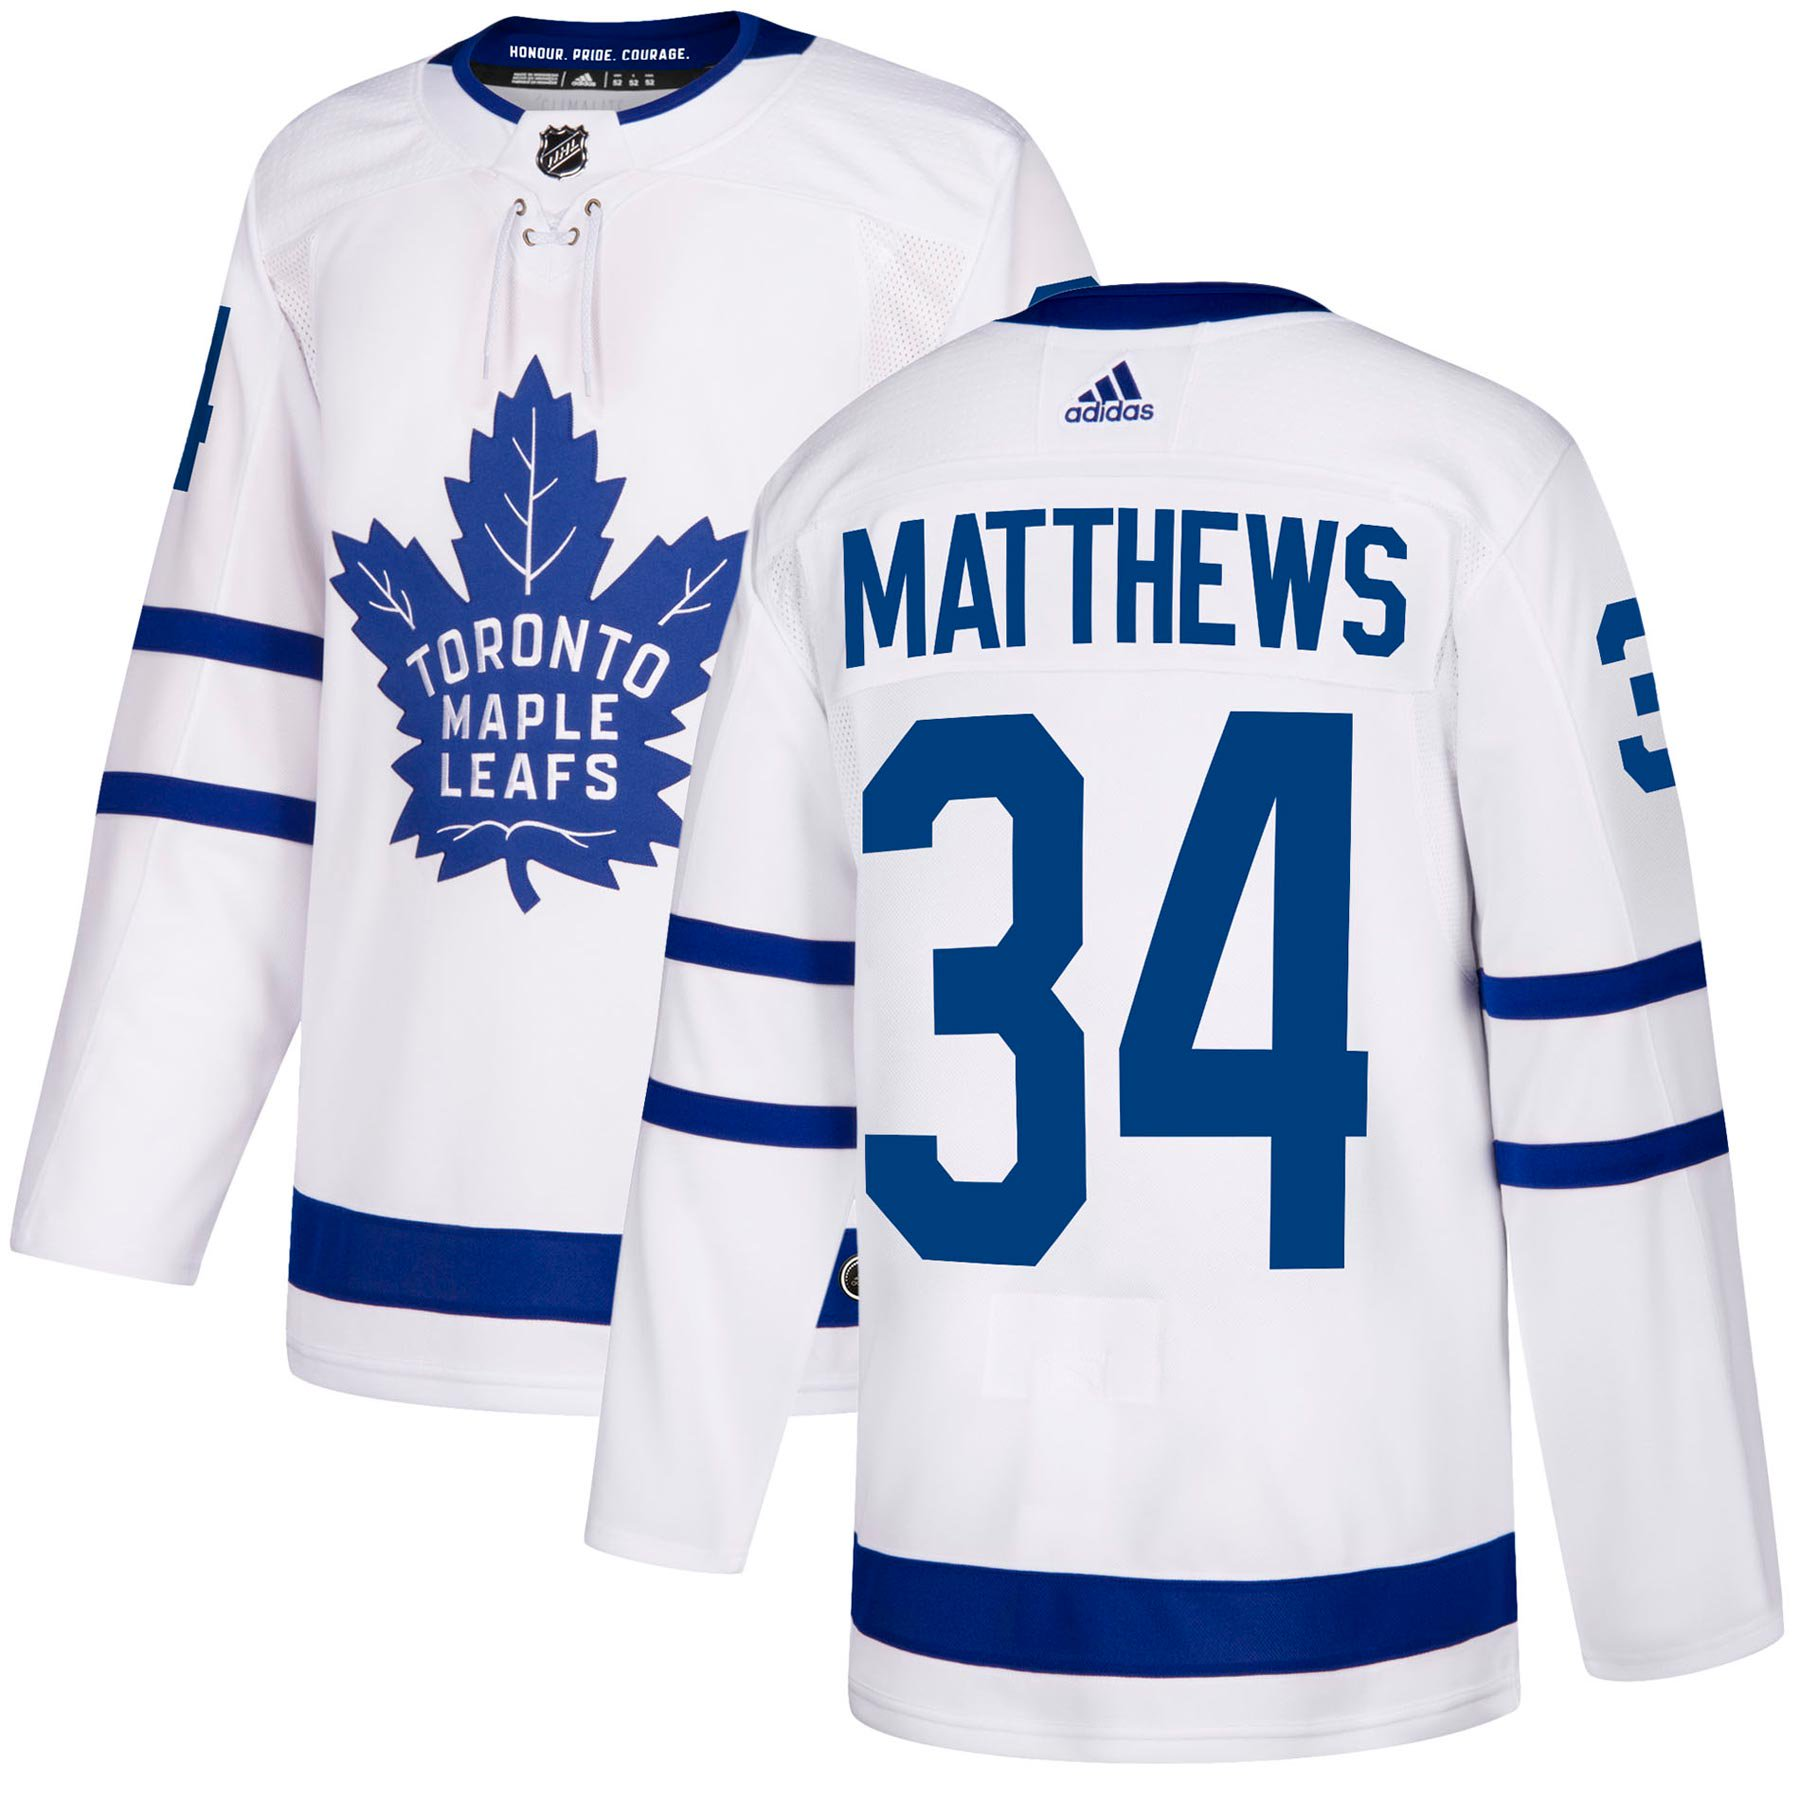 best service 30167 15245 Auston Matthews Toronto Maple Leafs adidas NHL Authentic Pro ...